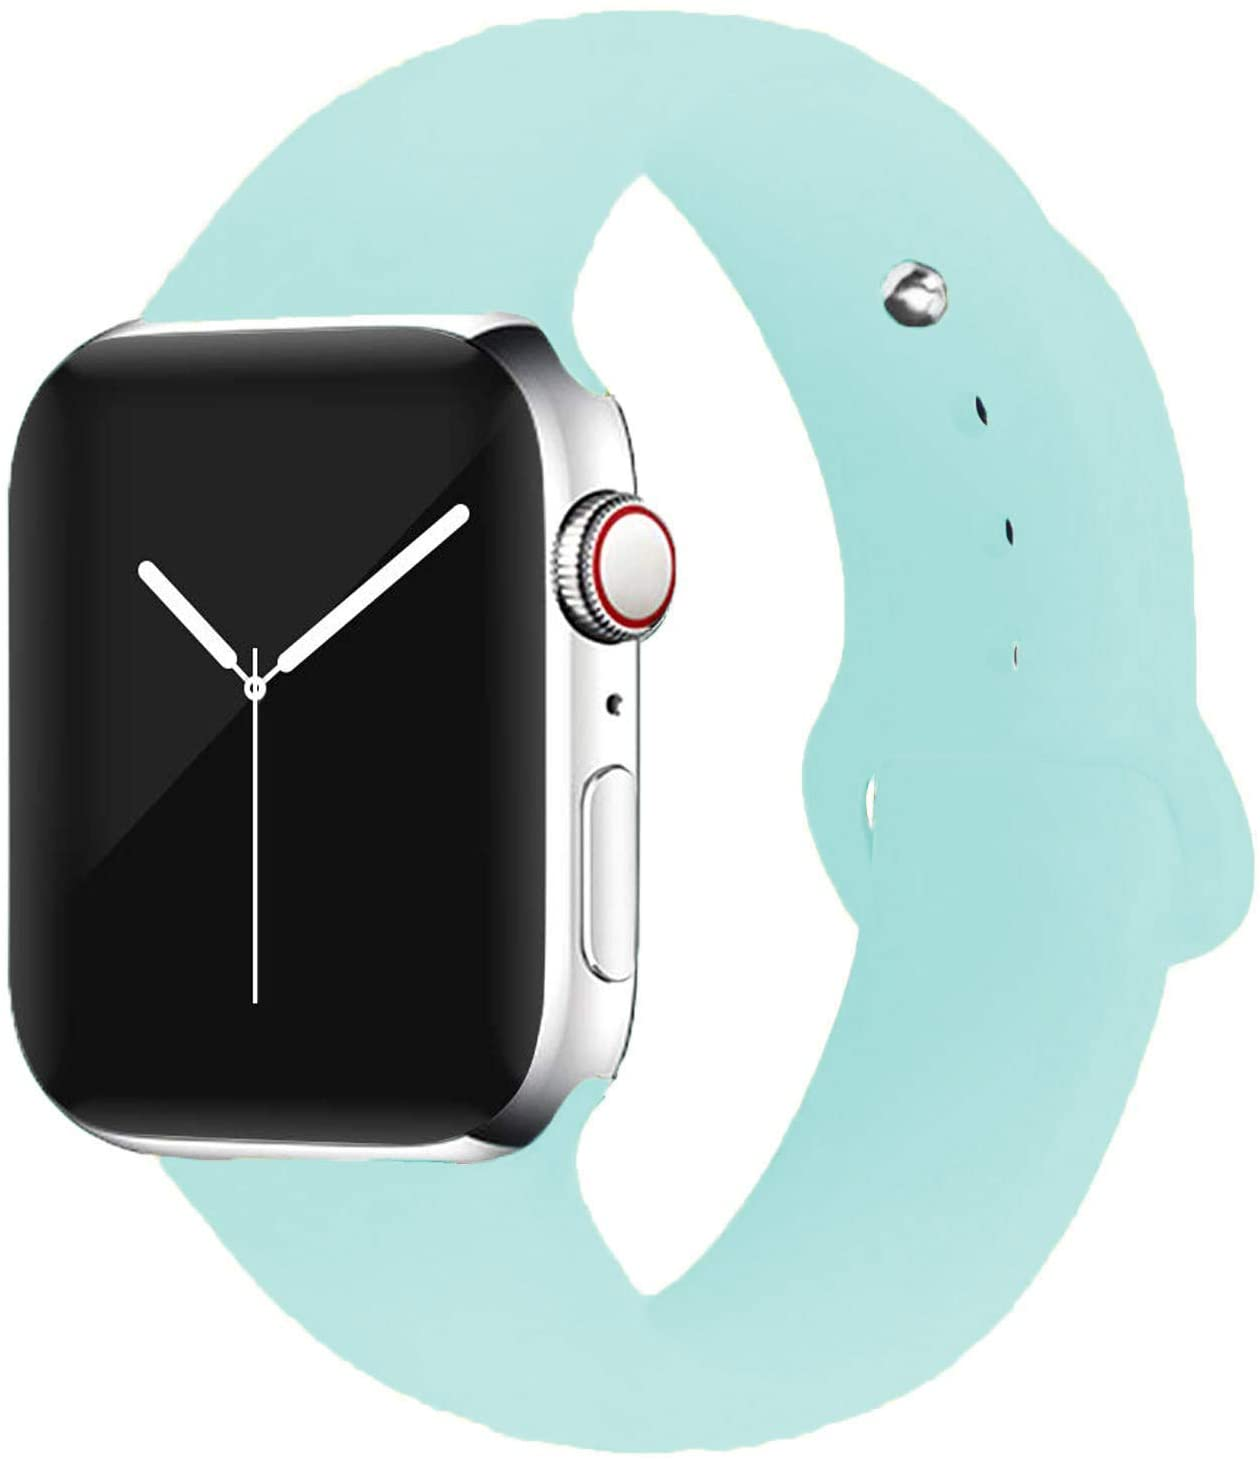 Odoan Band Compatible with Apple Watch, Soft Silicone Strap Wrist Replacement Band for Watch Series 5/4/3/2/1 (Transparent Mint Green, 42/44mm Medium/Large)